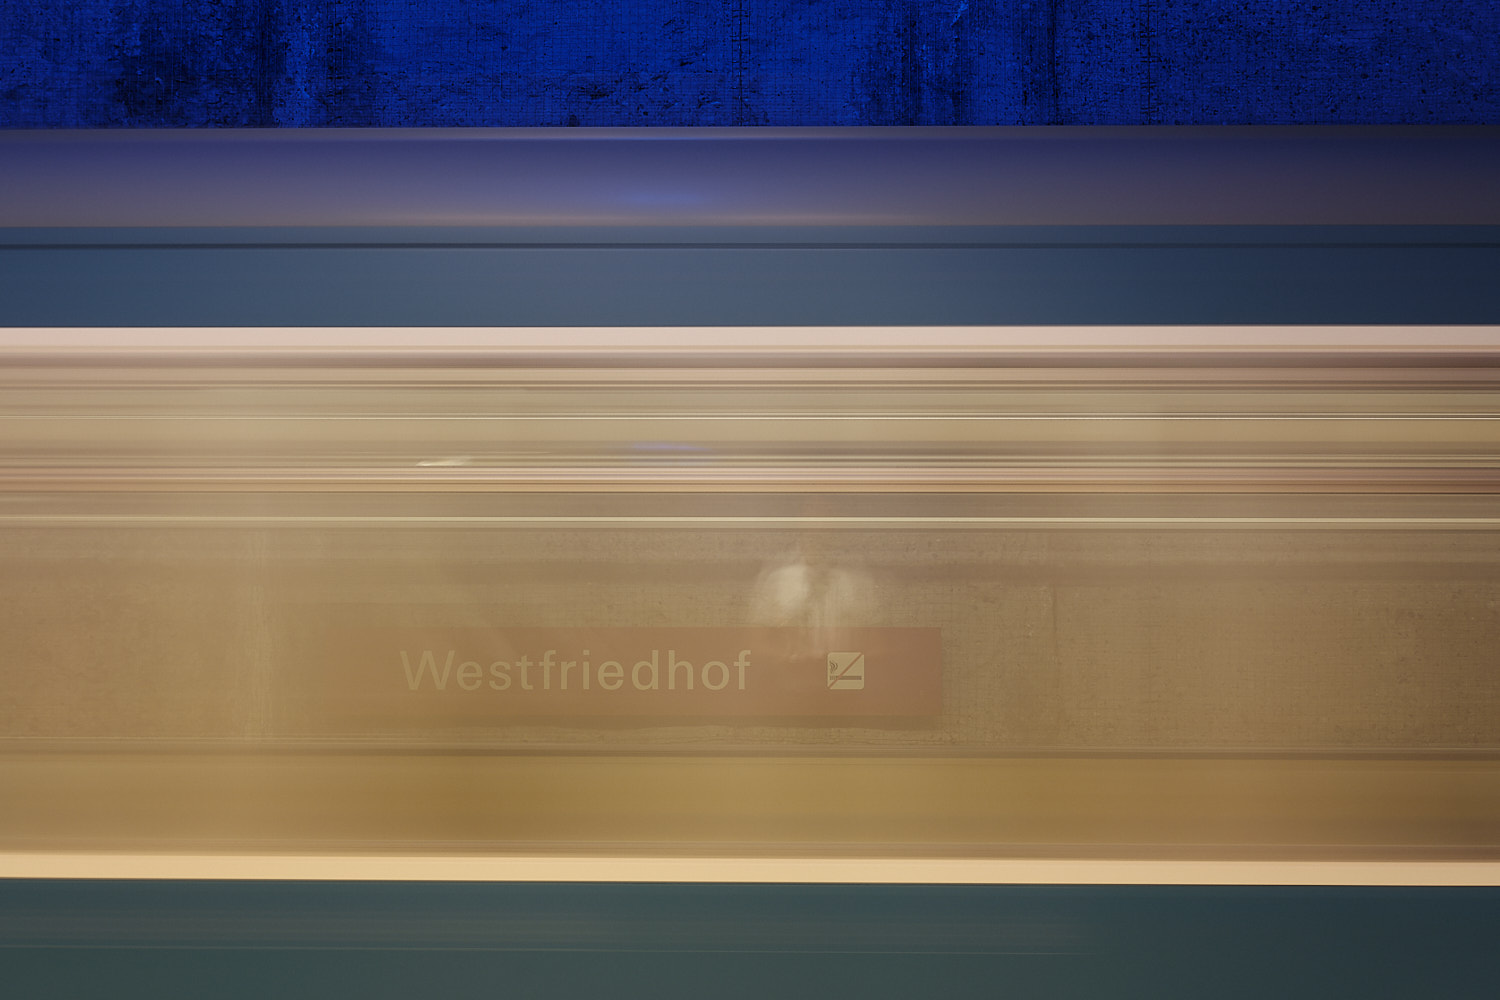 Westfriedhof long exposition U-Bahn departing station see-through windows the station signpost